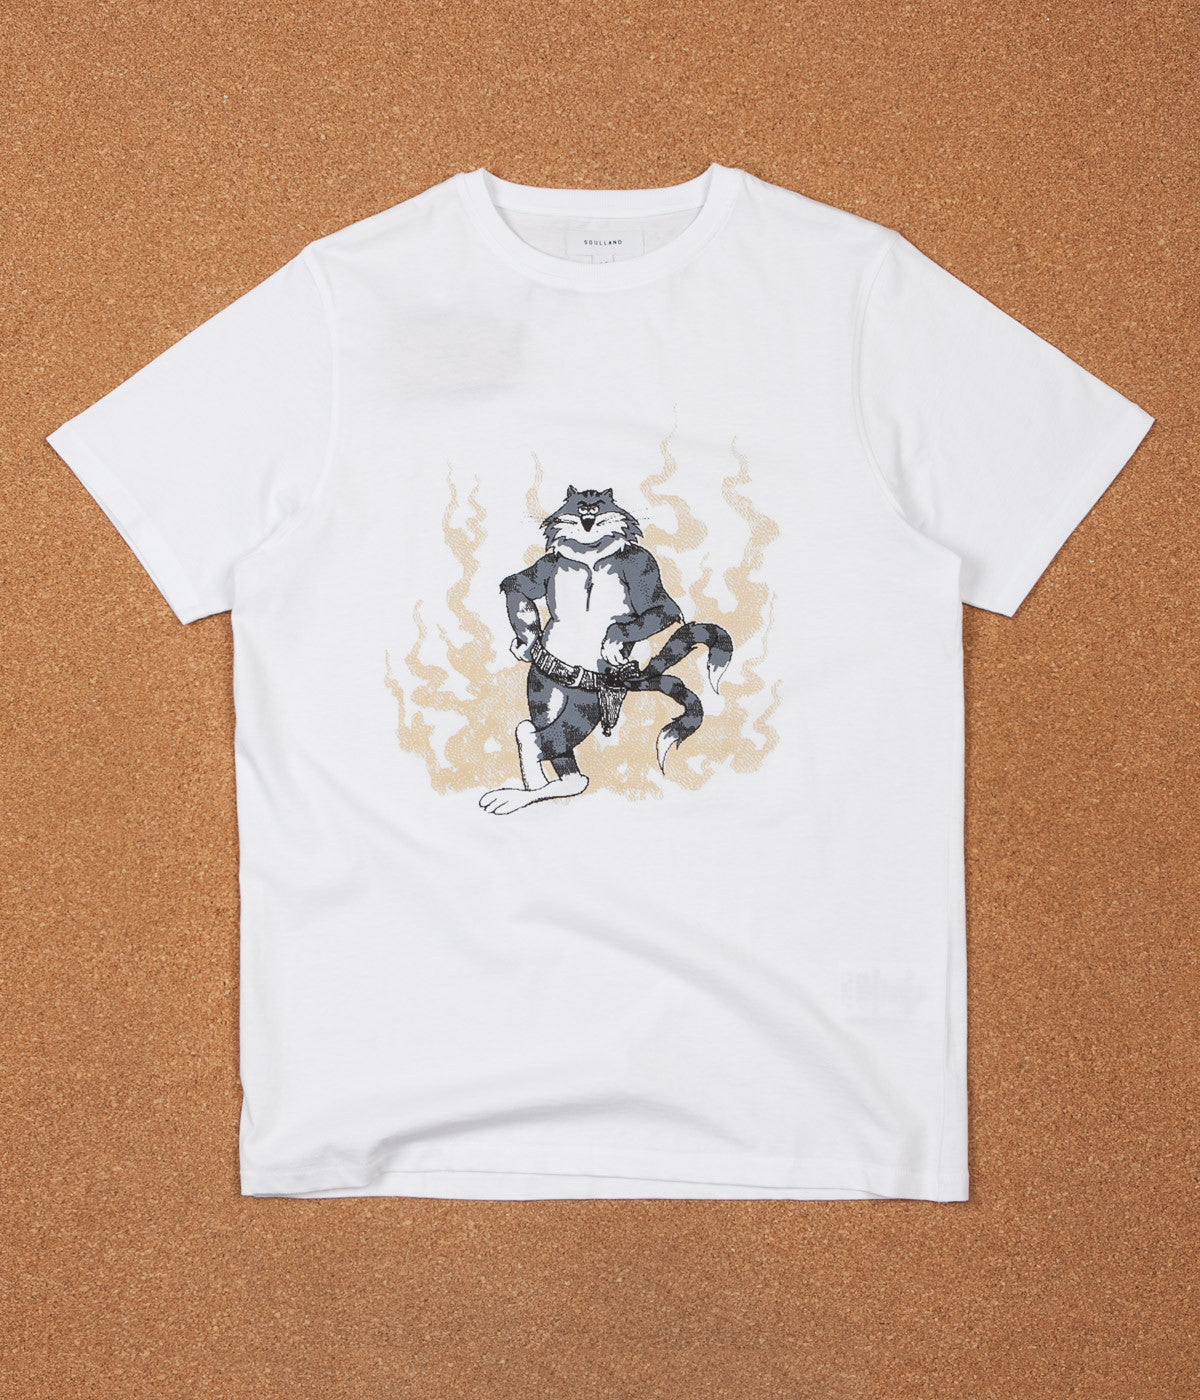 Soulland Manuel T-Shirt - White